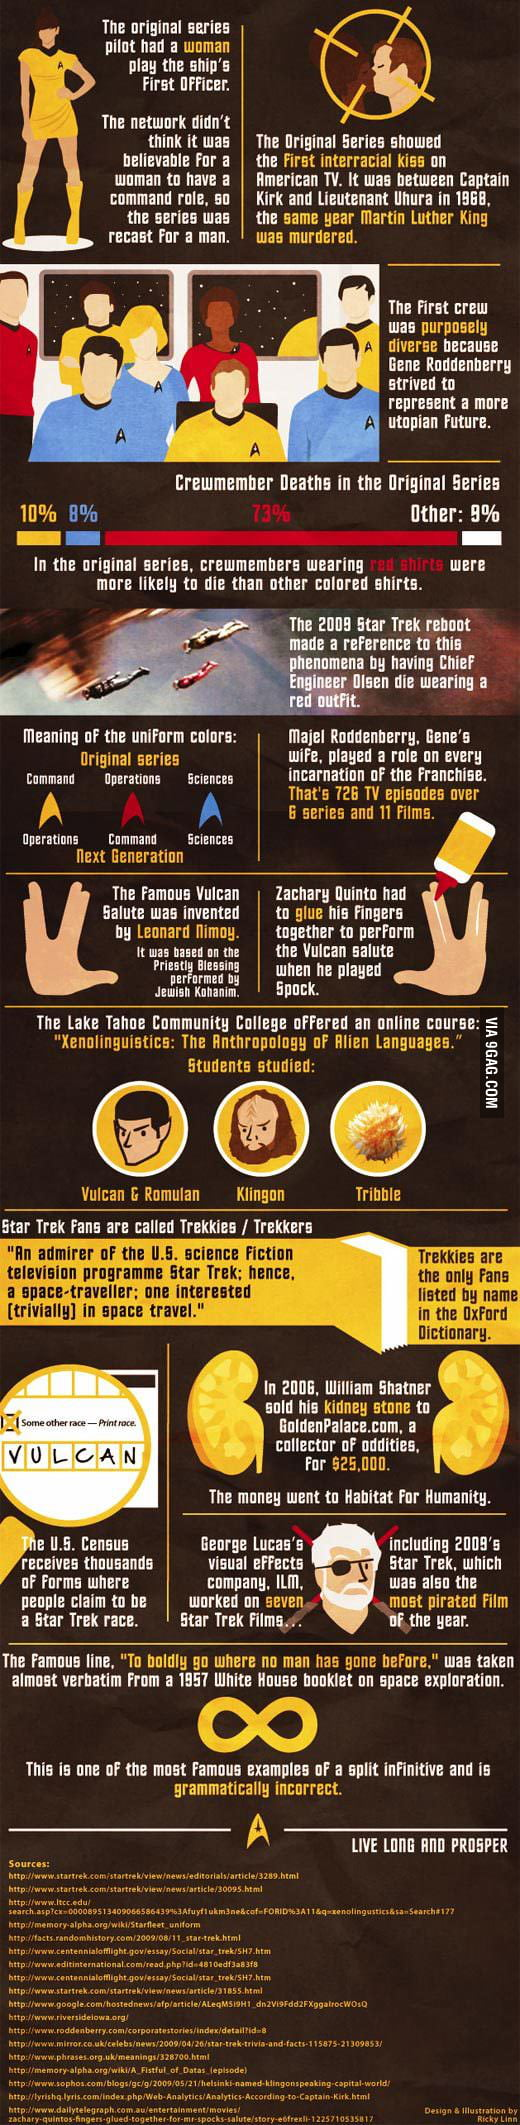 Some star trek facts